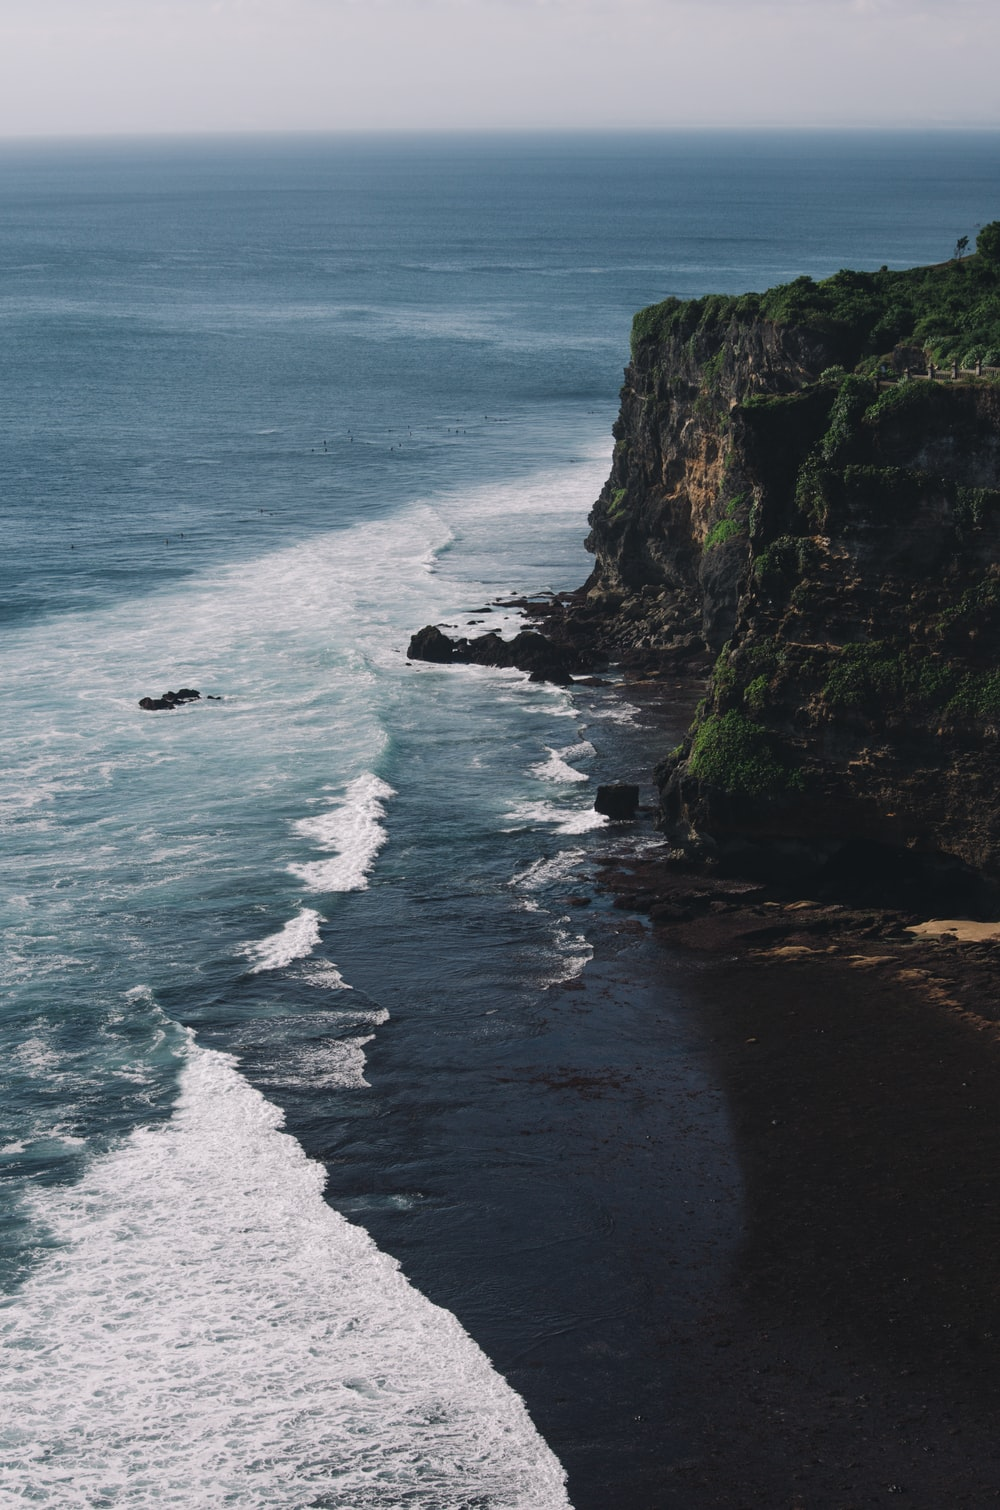 aerial photography of cliff beside body of water during daytime